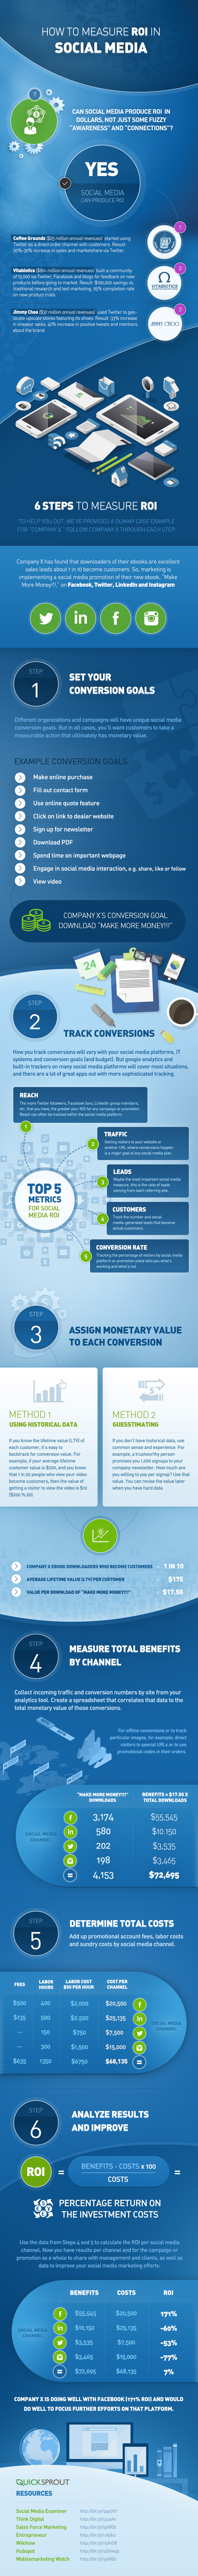 How to Determine Your Social Media Campaign ROI